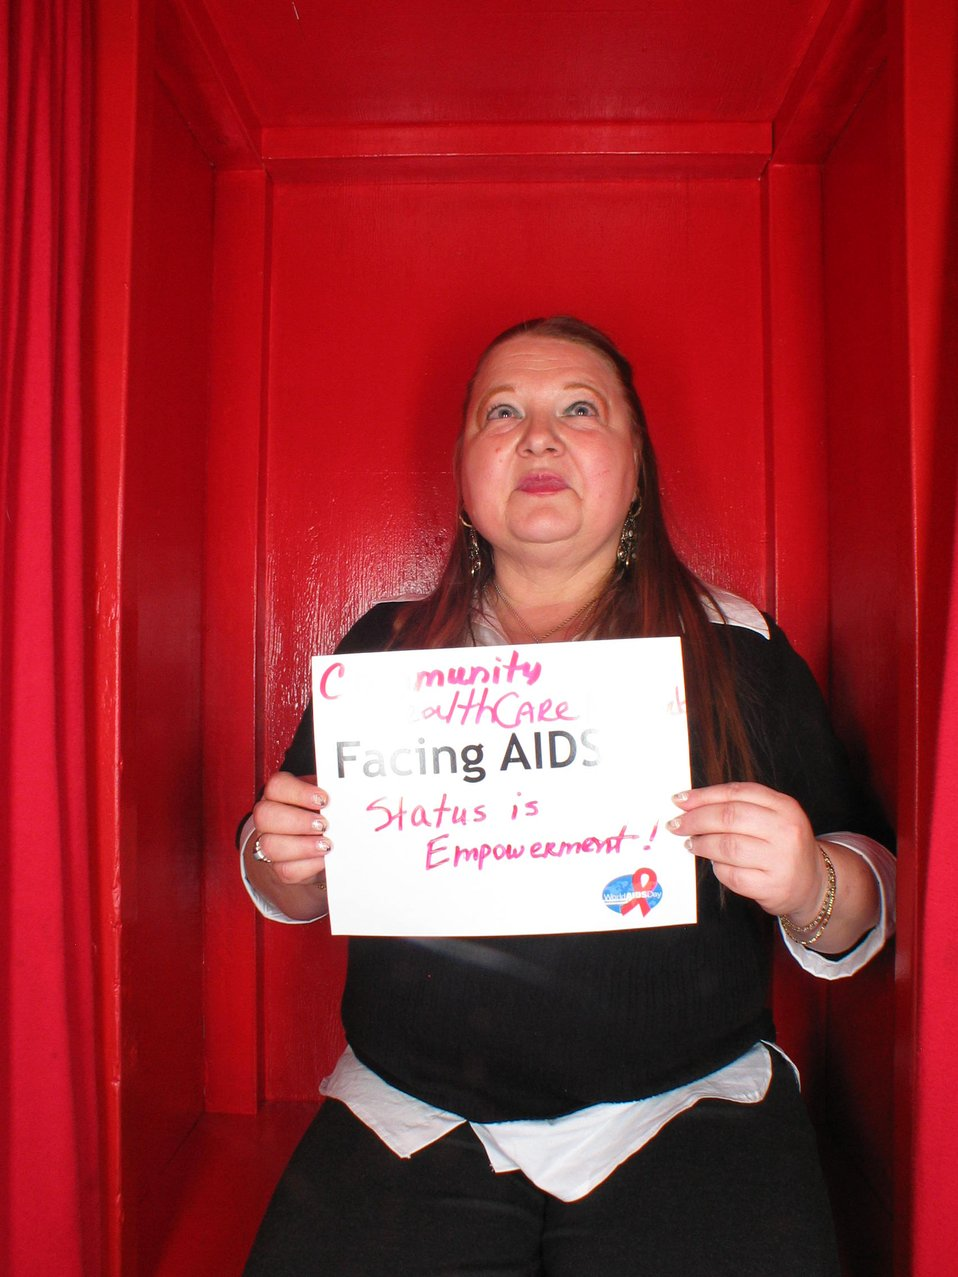 Facing AIDS status is empowerment.